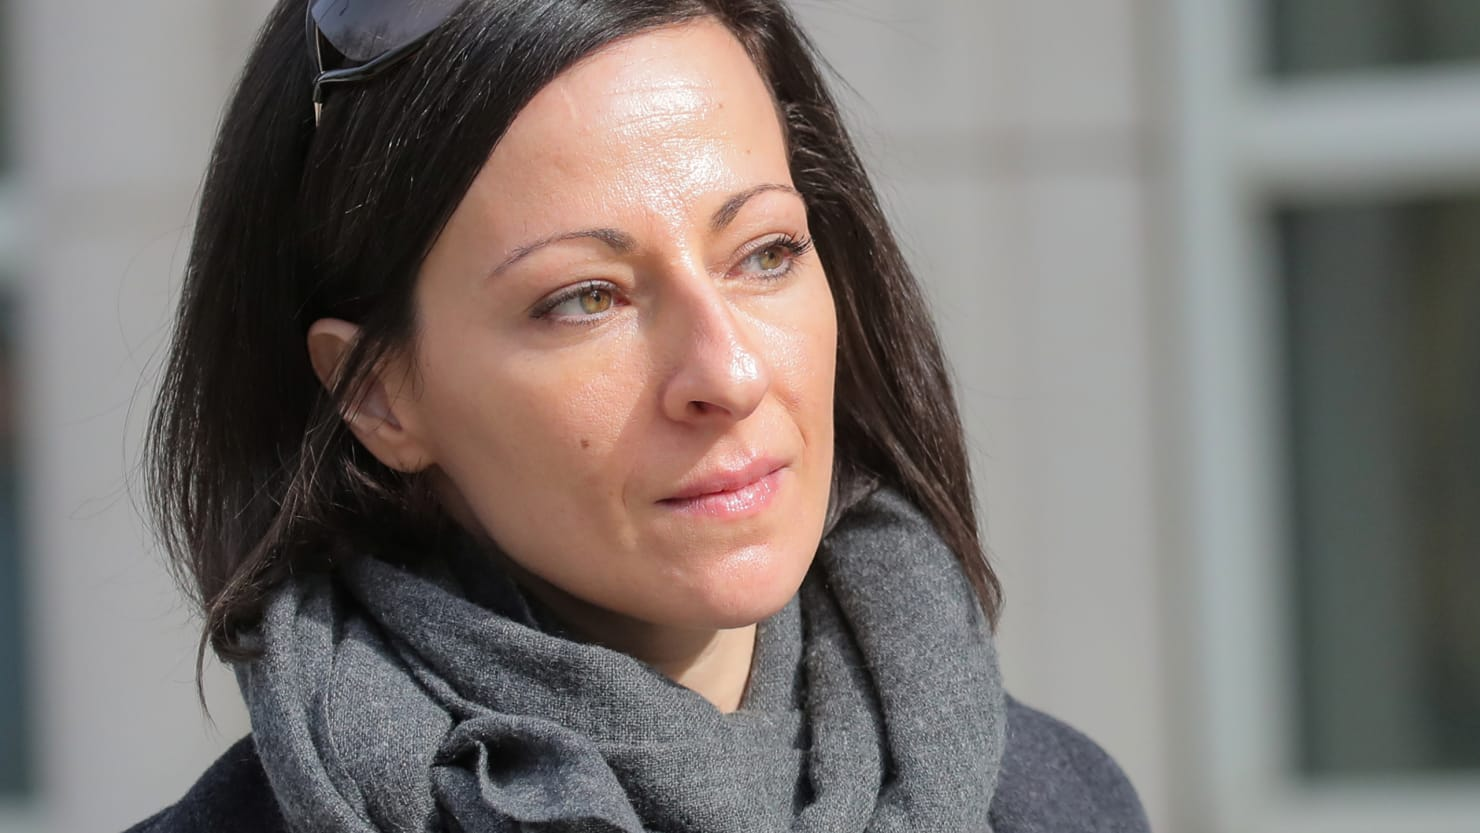 York Auto Group >> NXIVM Sex Cult Member Lauren Salzman Admits to Locking Woman in Room for Two Years: Report